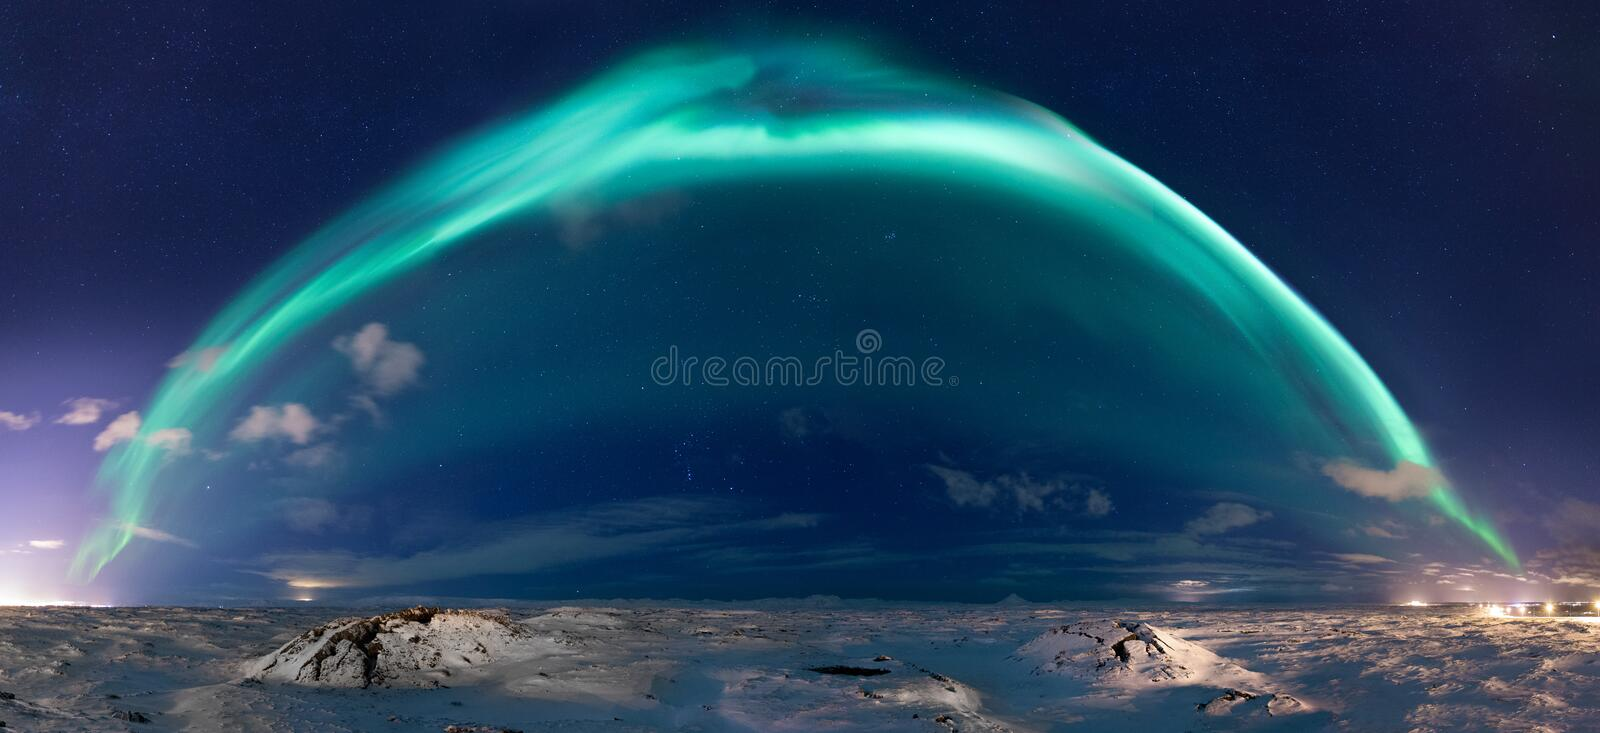 Panorama of northern lights. Northern lights stretching from the city of Reykjavik, Iceland to the west (left) to the town of Keflavik to the east (right royalty free stock photo